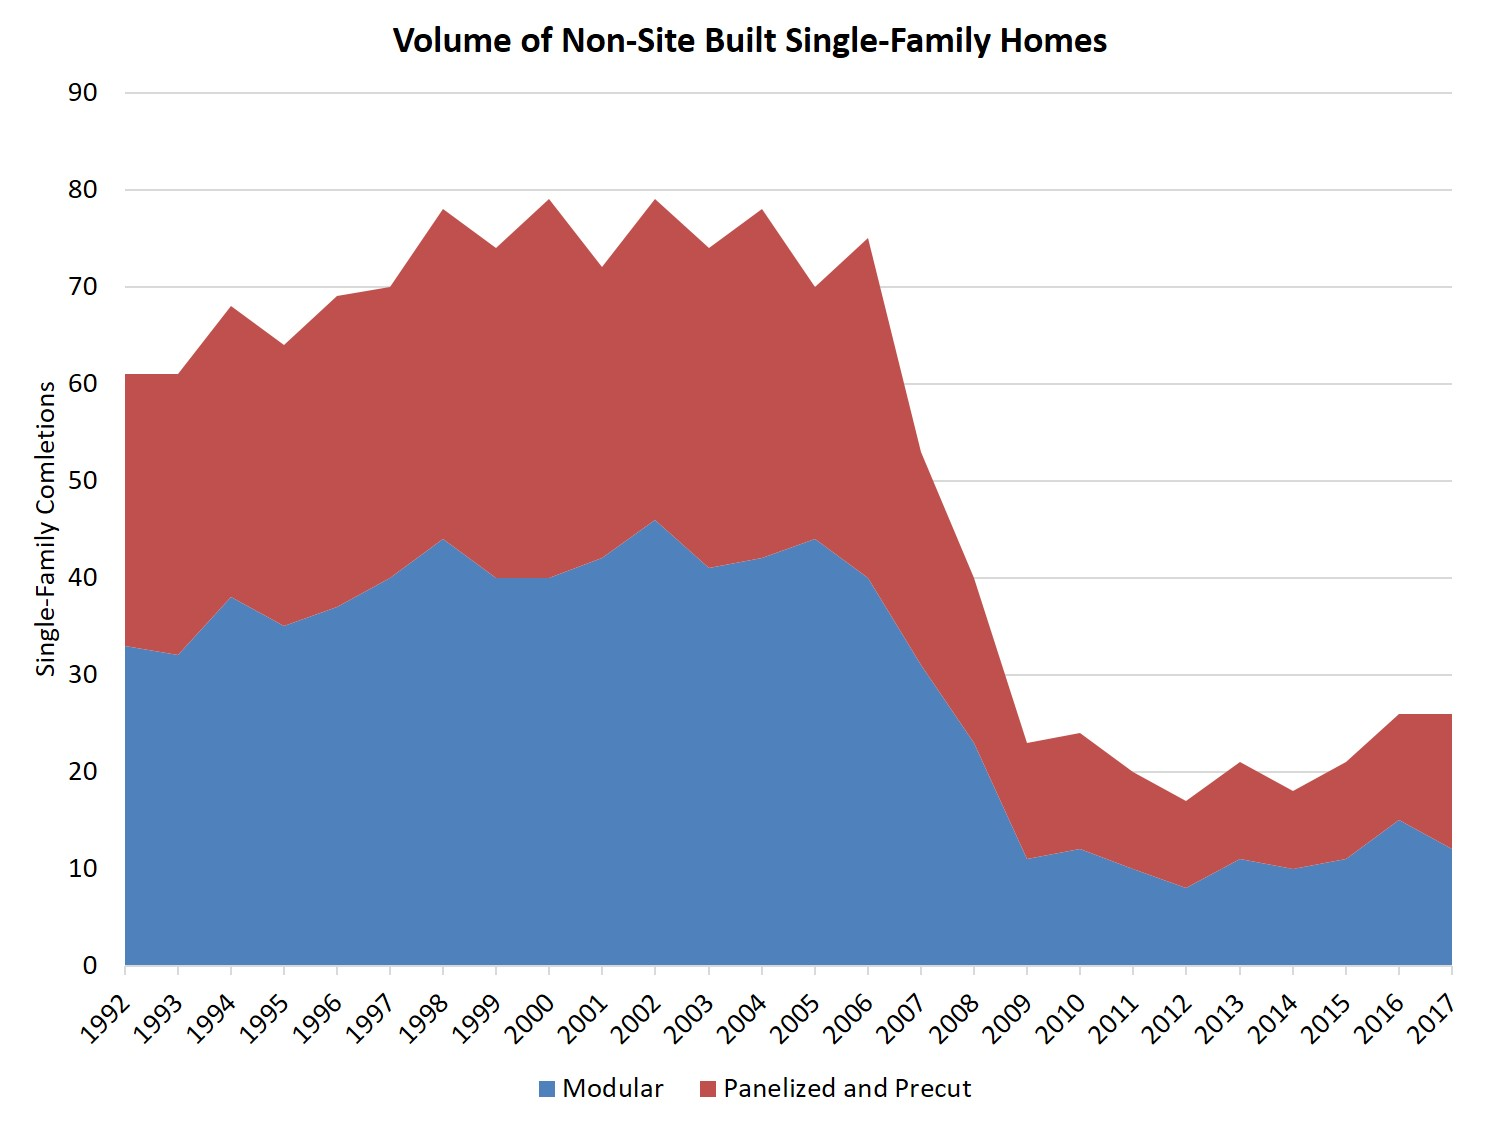 Off Site Built Homes ... homes built off-site is expected to grow. However, the market share of  3.3 percent in 2017 was lower than in years past, with 1997 and 1998 having  the ...